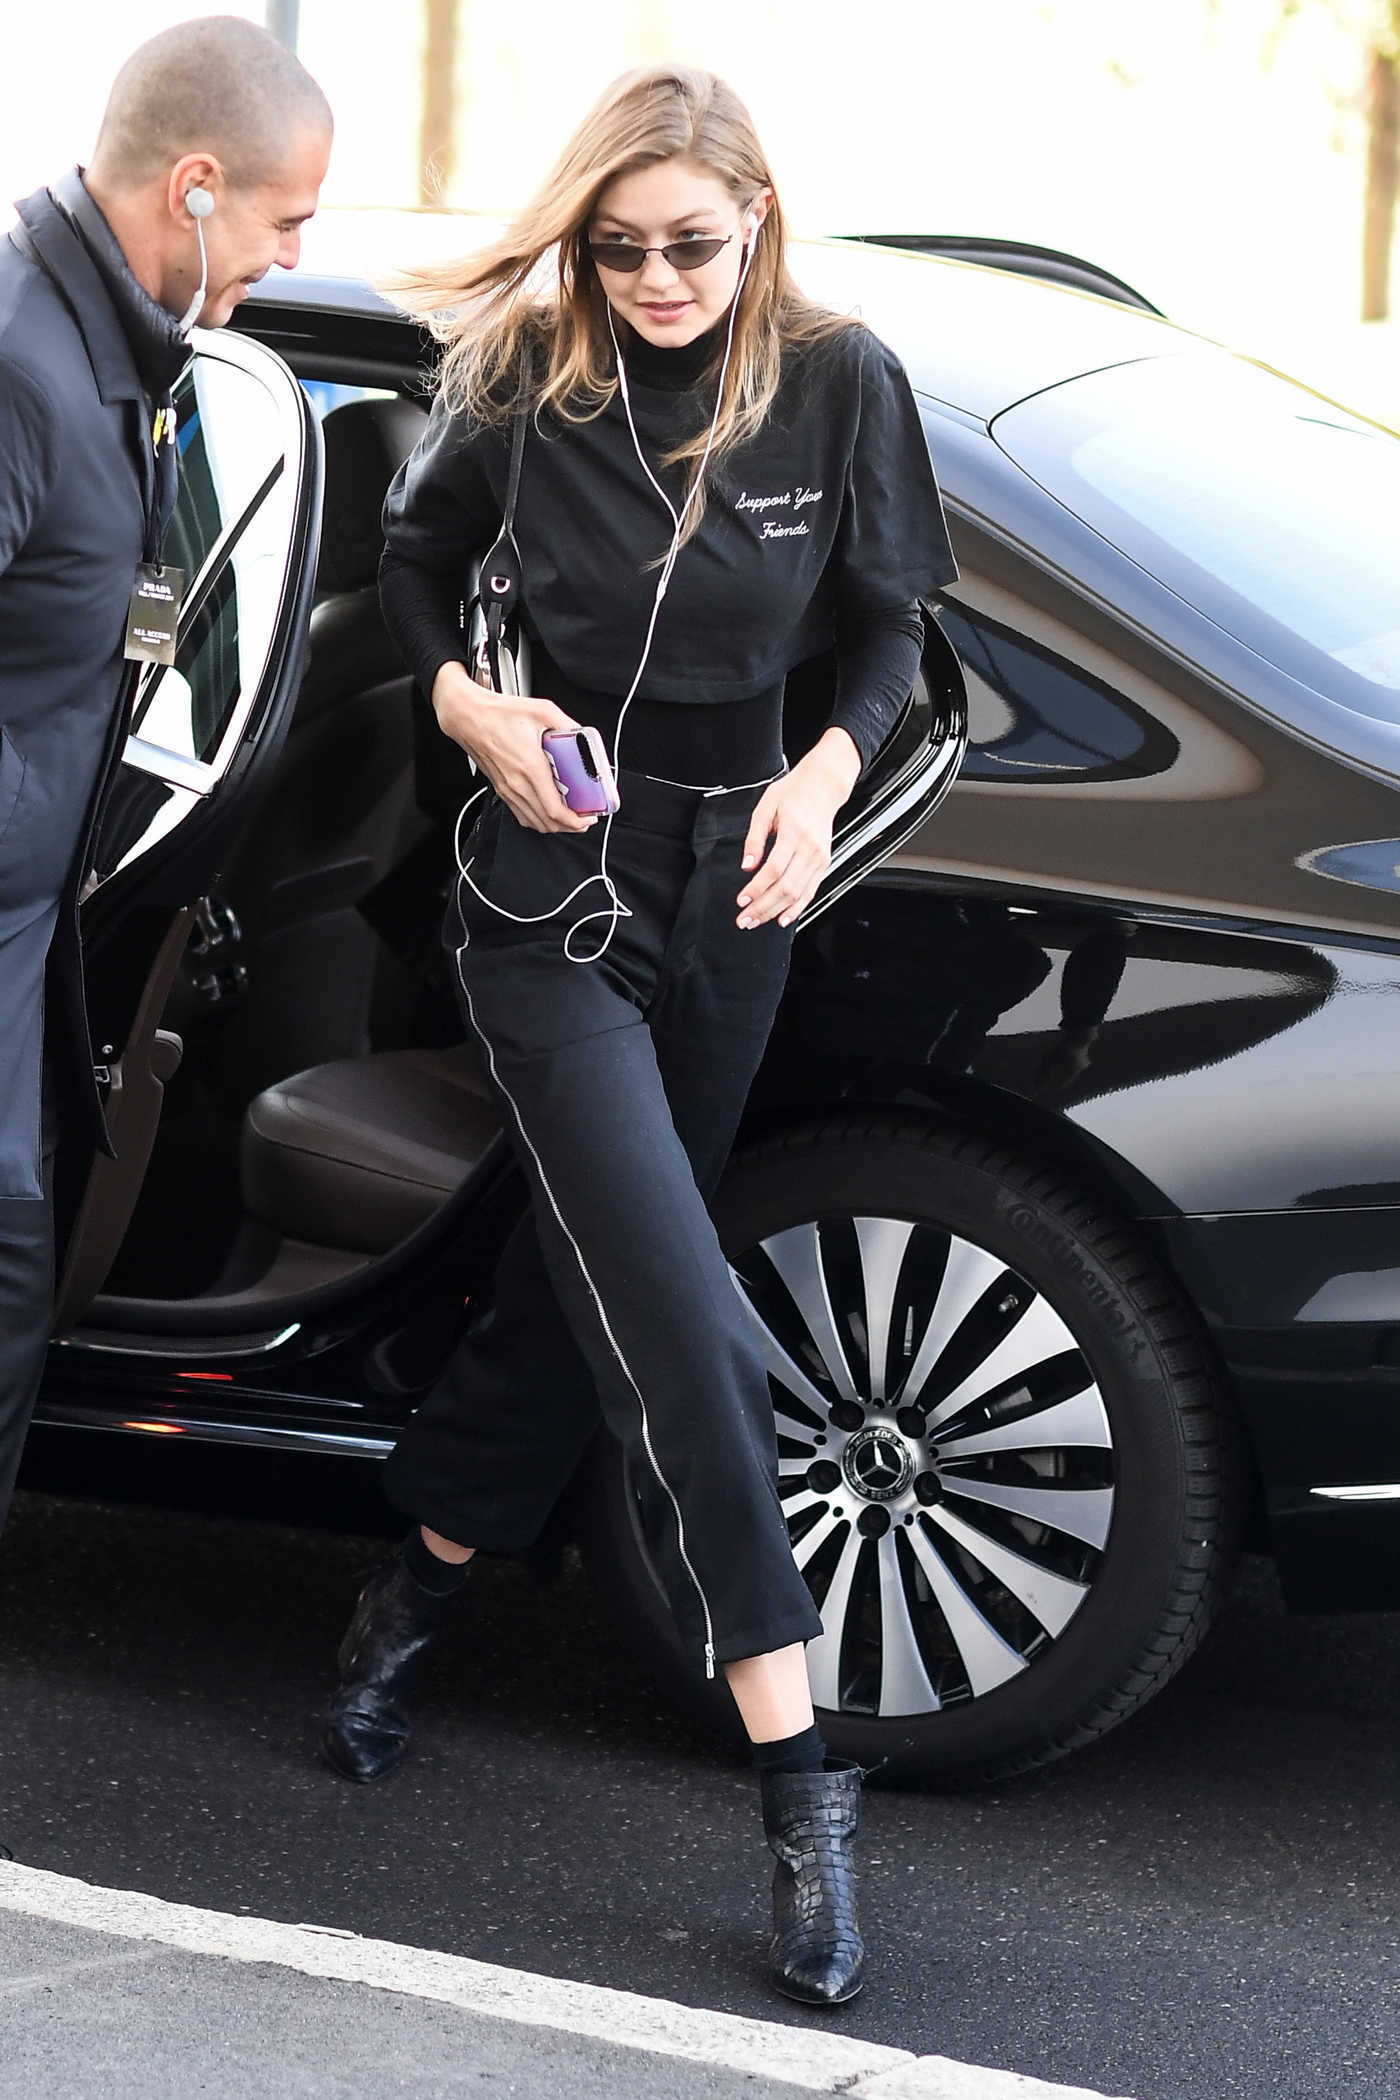 Gigi Hadid in a Black Pants Was Seen Out in Milan 01/13/2019